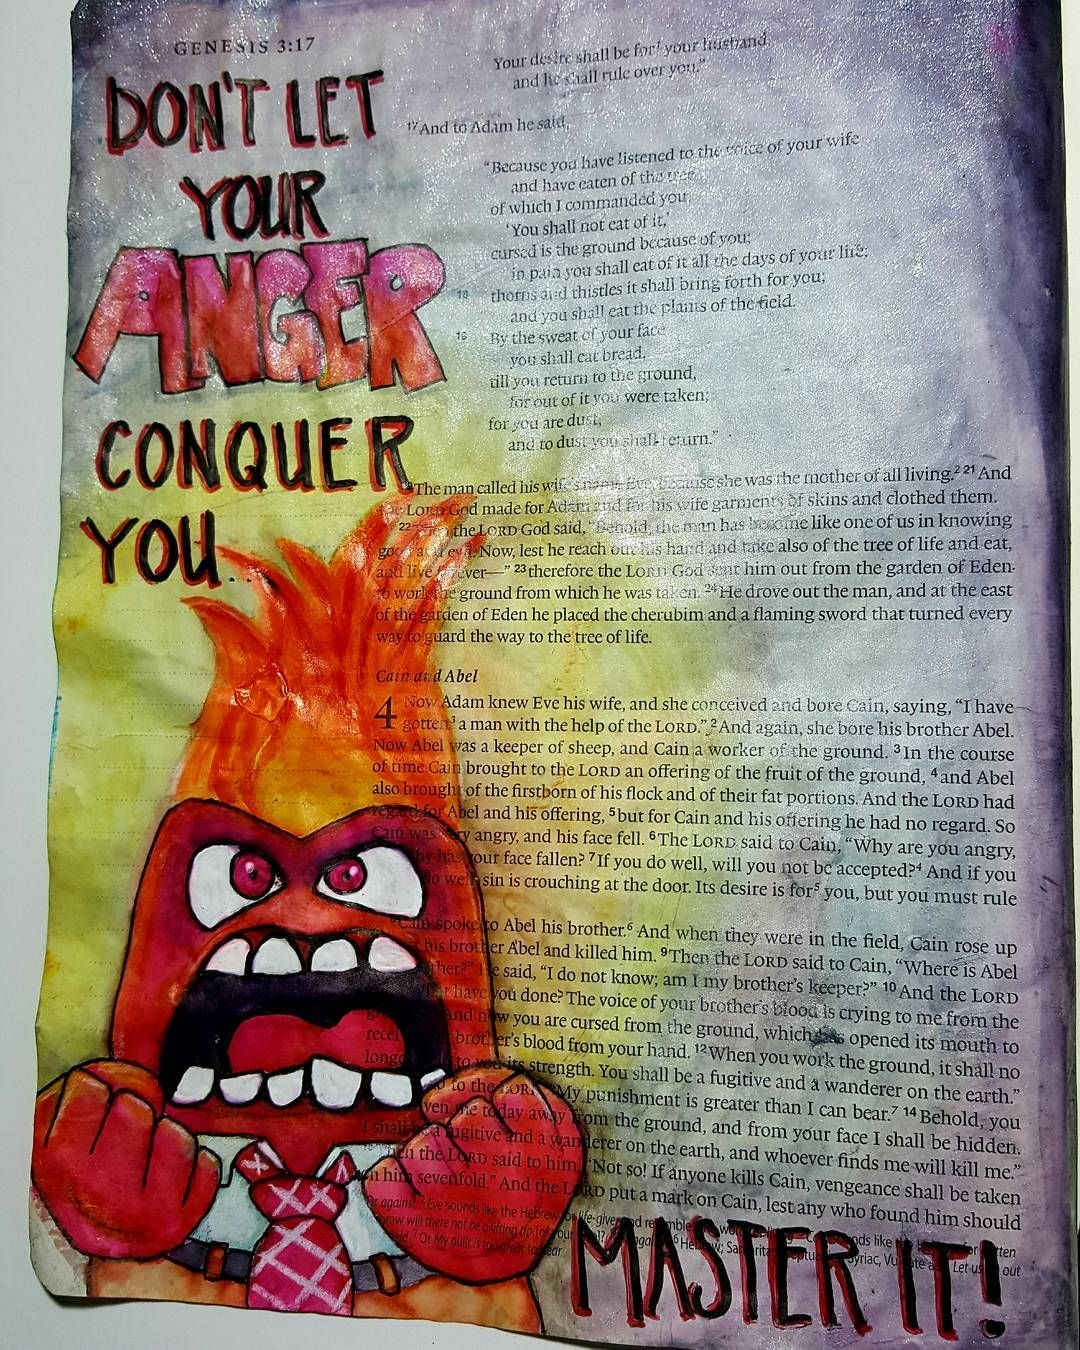 Taken from the story of Cain and Abel. If we let our anger rule us ...